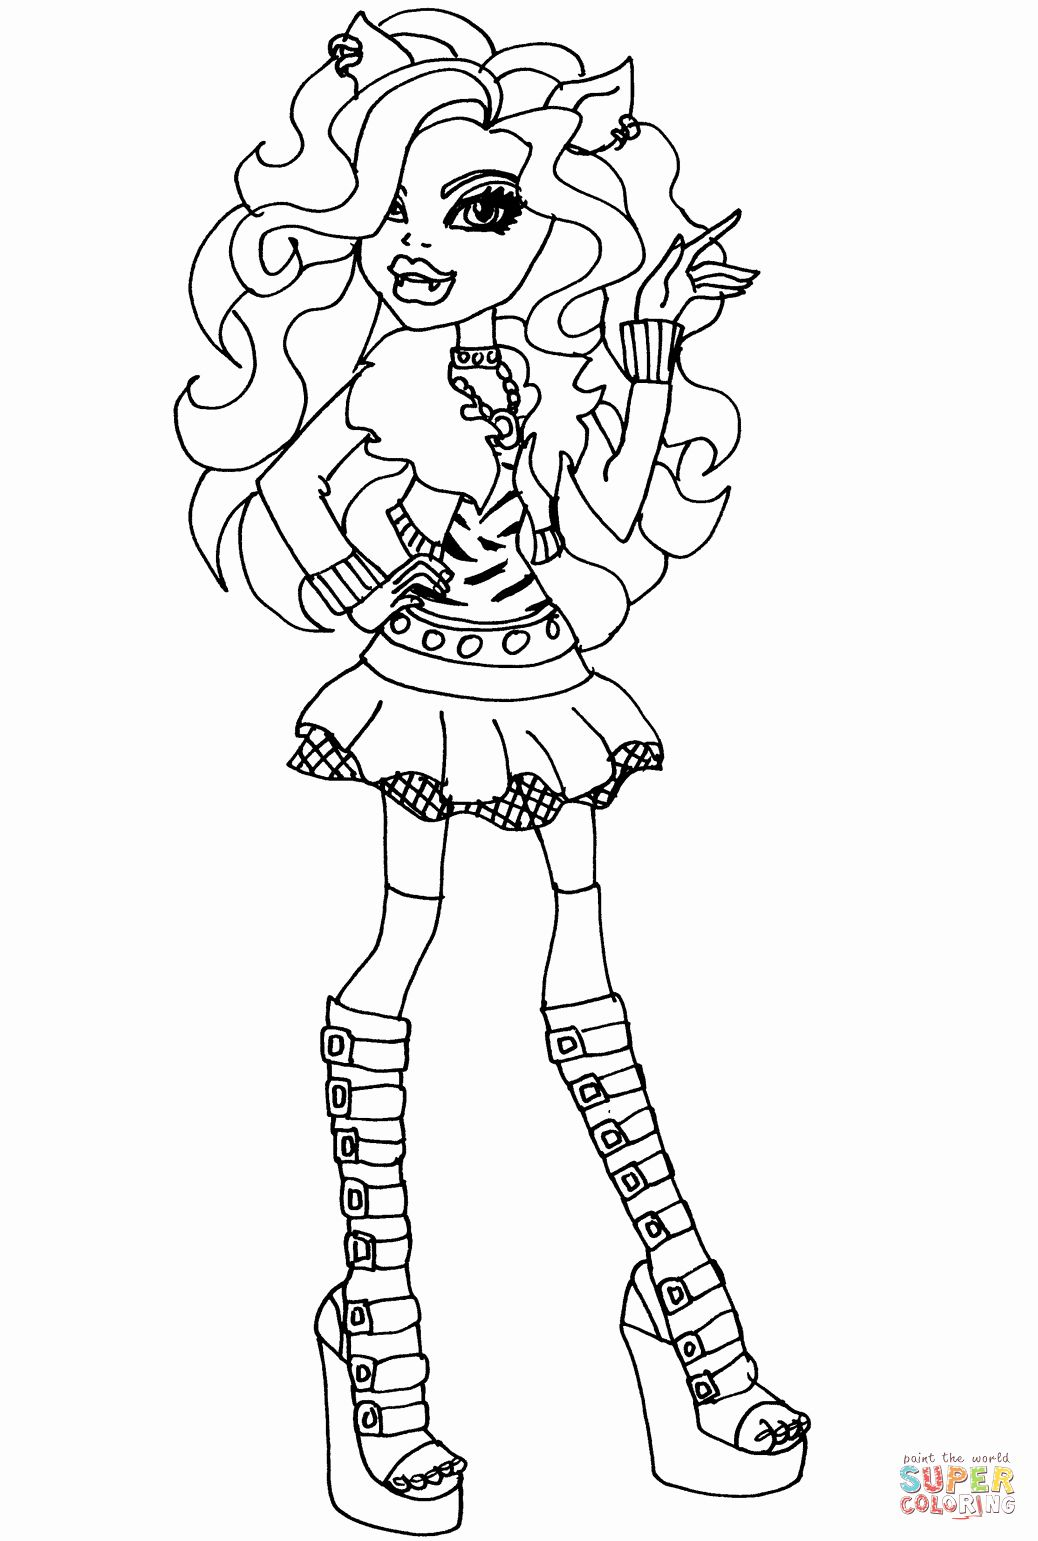 Monster High Coloring Book Fresh Monster High Clawdeen Wolf Coloring Page Halloween Coloring Pages Coloring Pages Halloween Coloring